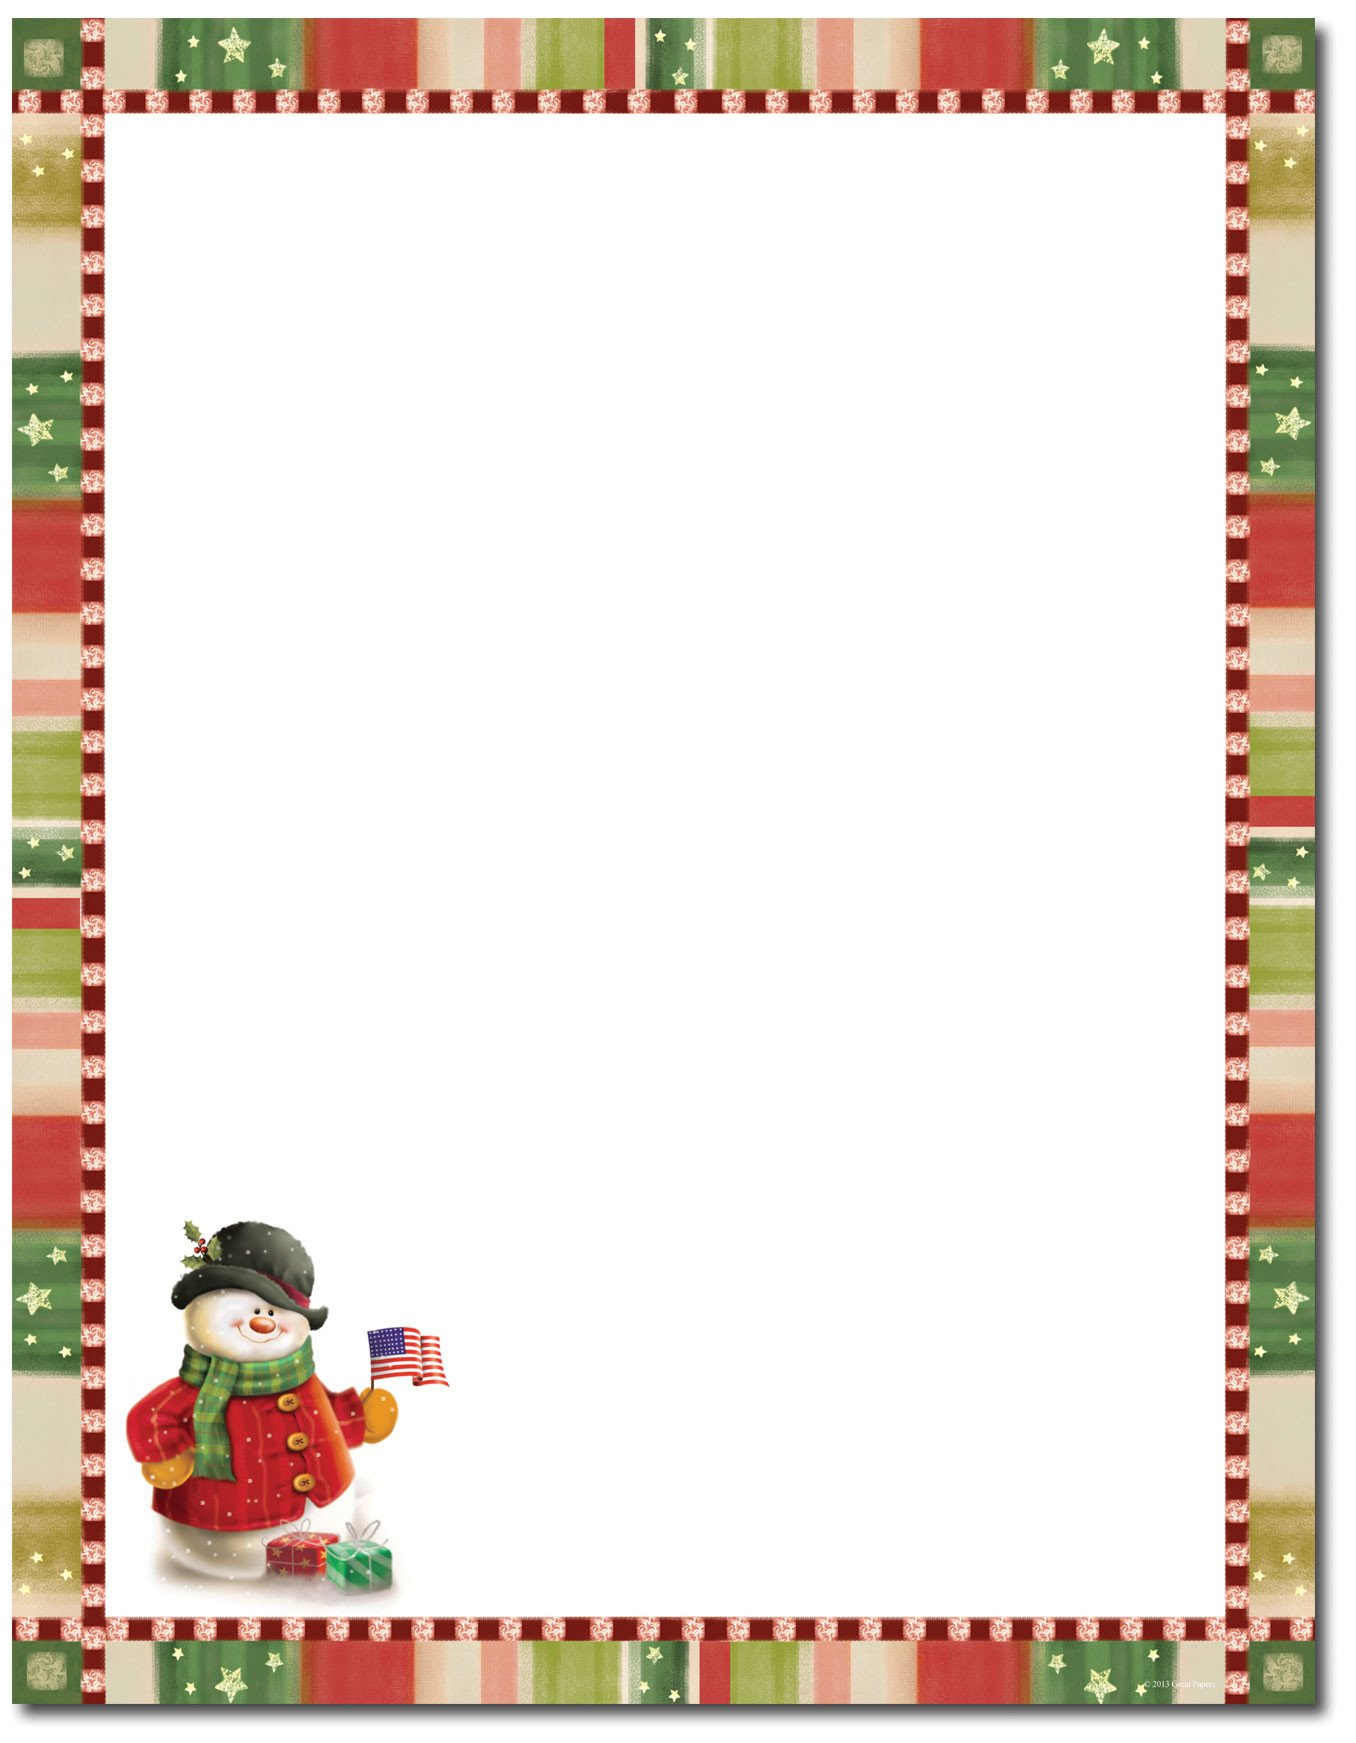 Free Christmas Templates for Word Great Papers Patriotic Snowman Letterhead